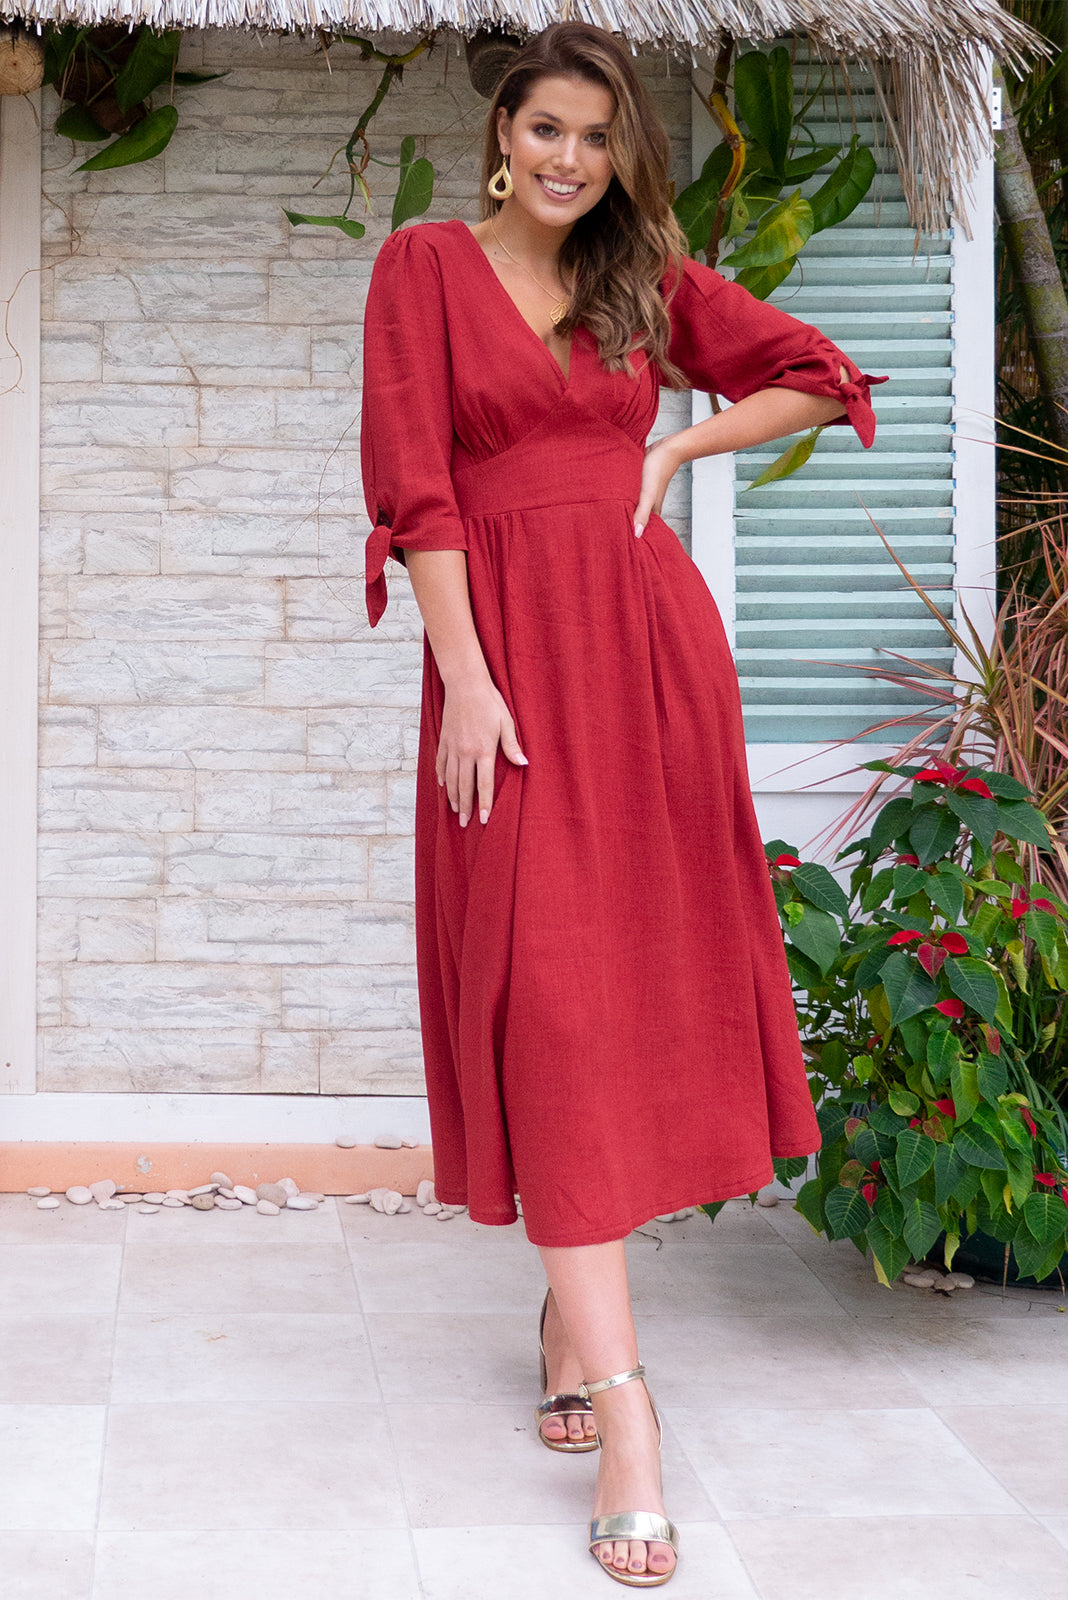 Henrietta Redcurrant Midi dress features a vintage inspired fitted basque waist and elasticated waist with a midi sleeve and deep v neck the fabric is a soft woven rayon linen mix in a bright romantic red